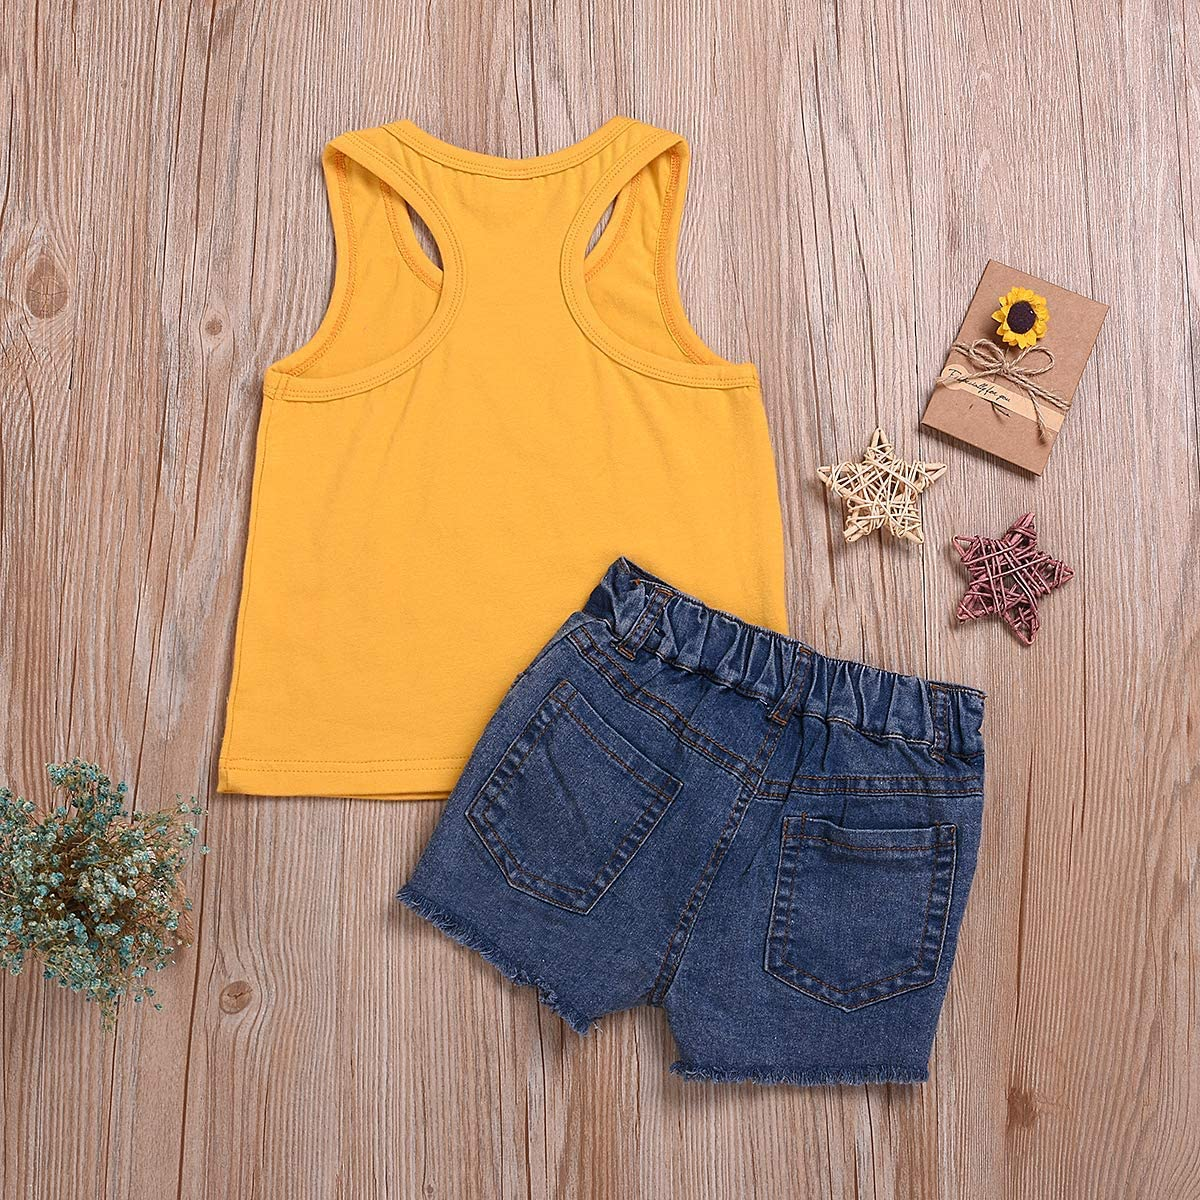 Jurebecia Newborn Infant Baby Girl Clothes Letter Print Sleeveless Tops Denim Short Pant Summer Outfit Set